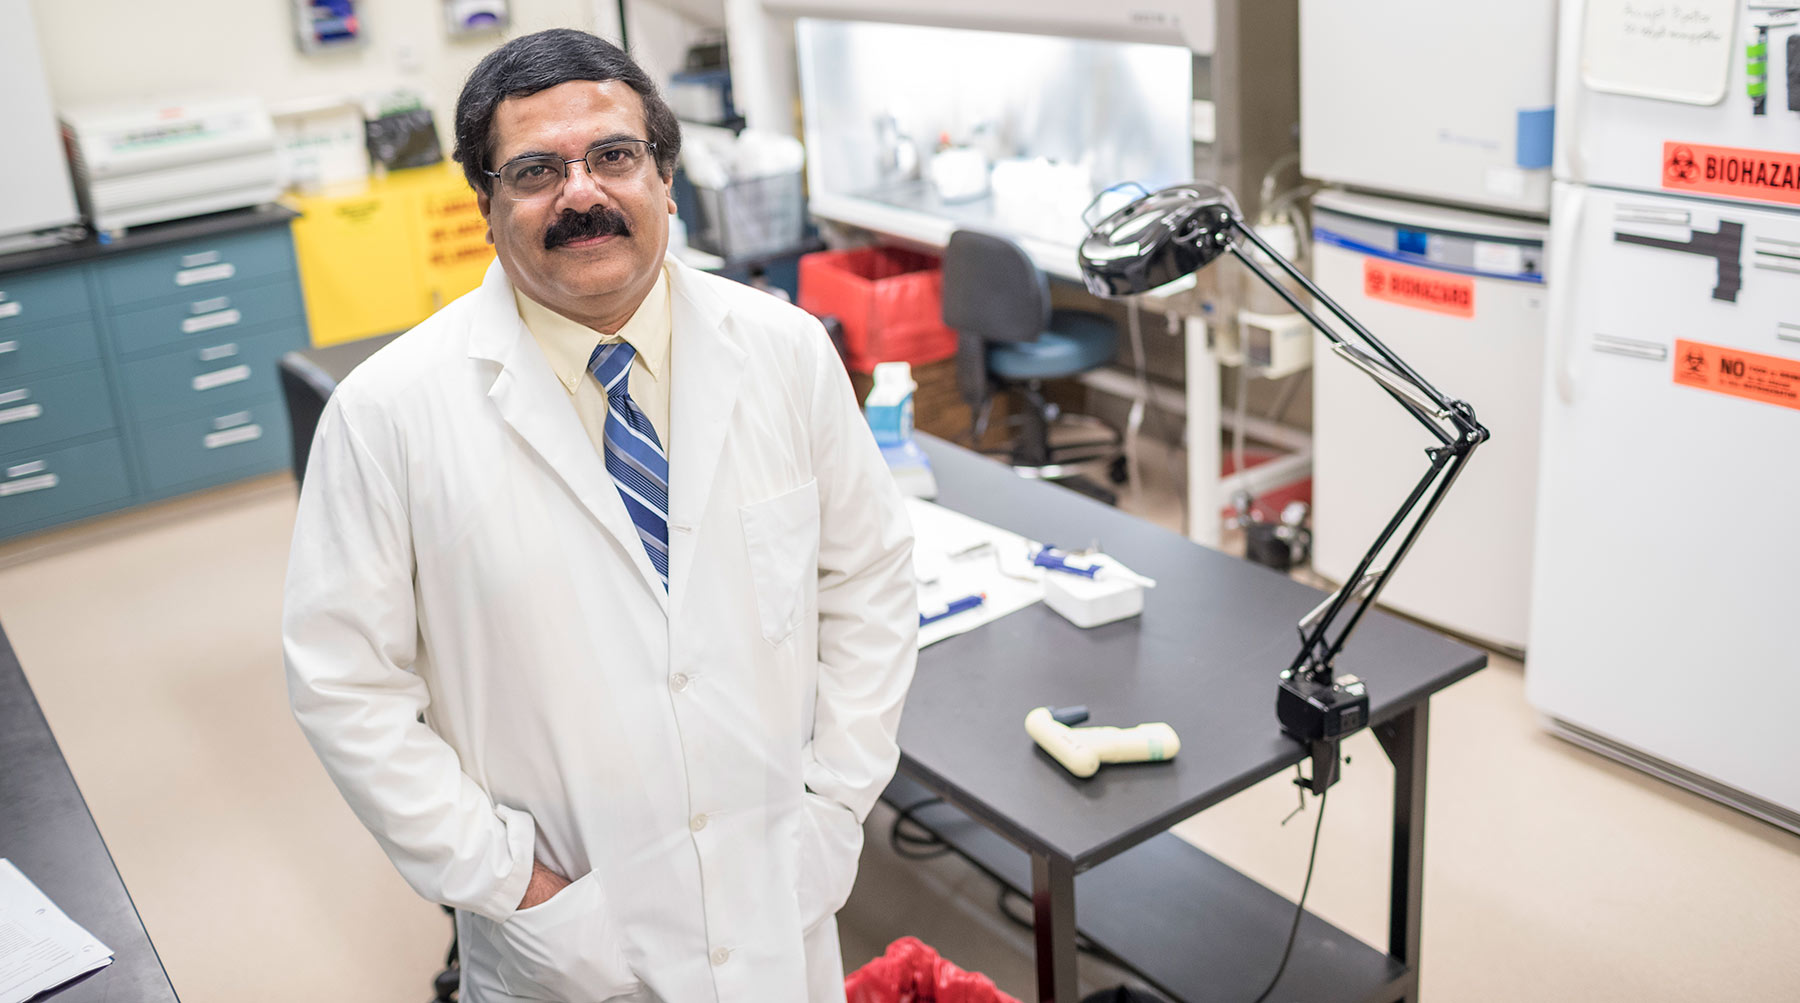 Dr. Adayabalam Balajee, director of the REAC/TS Cytogenetic Biodosimetry Laboratory